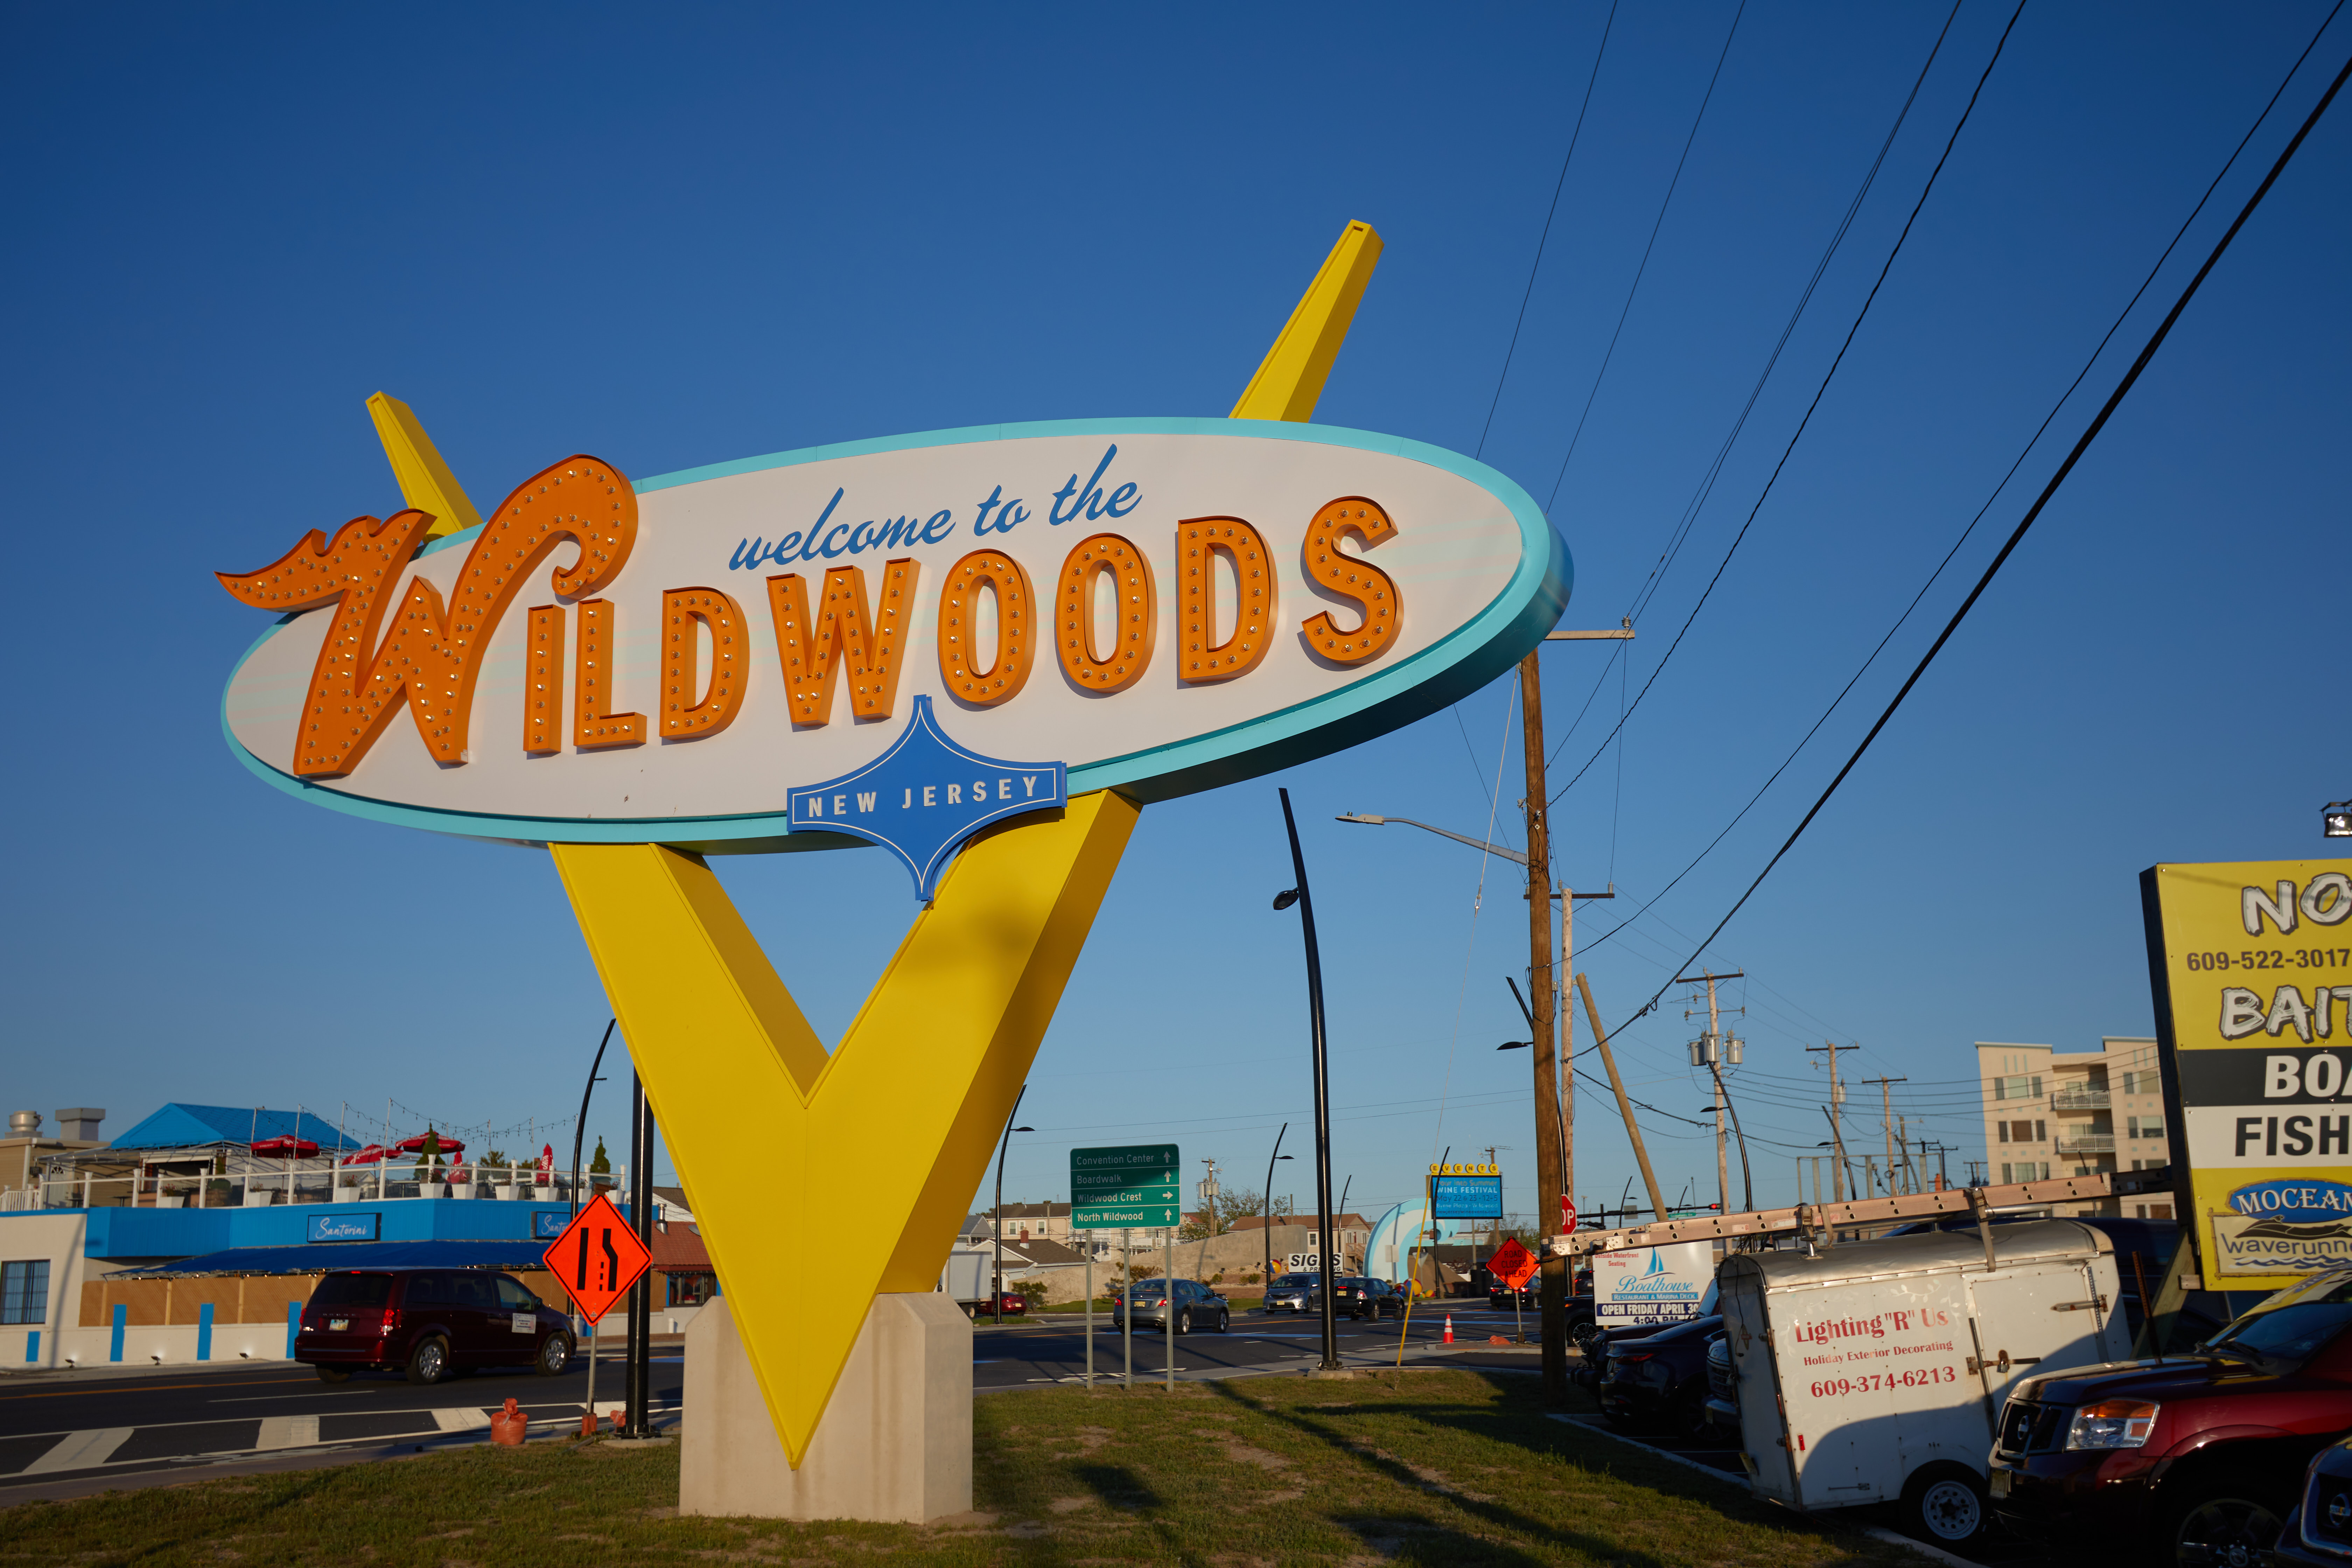 Large doo-wop style sign that says WELCOME TO THE WILDWOODS.